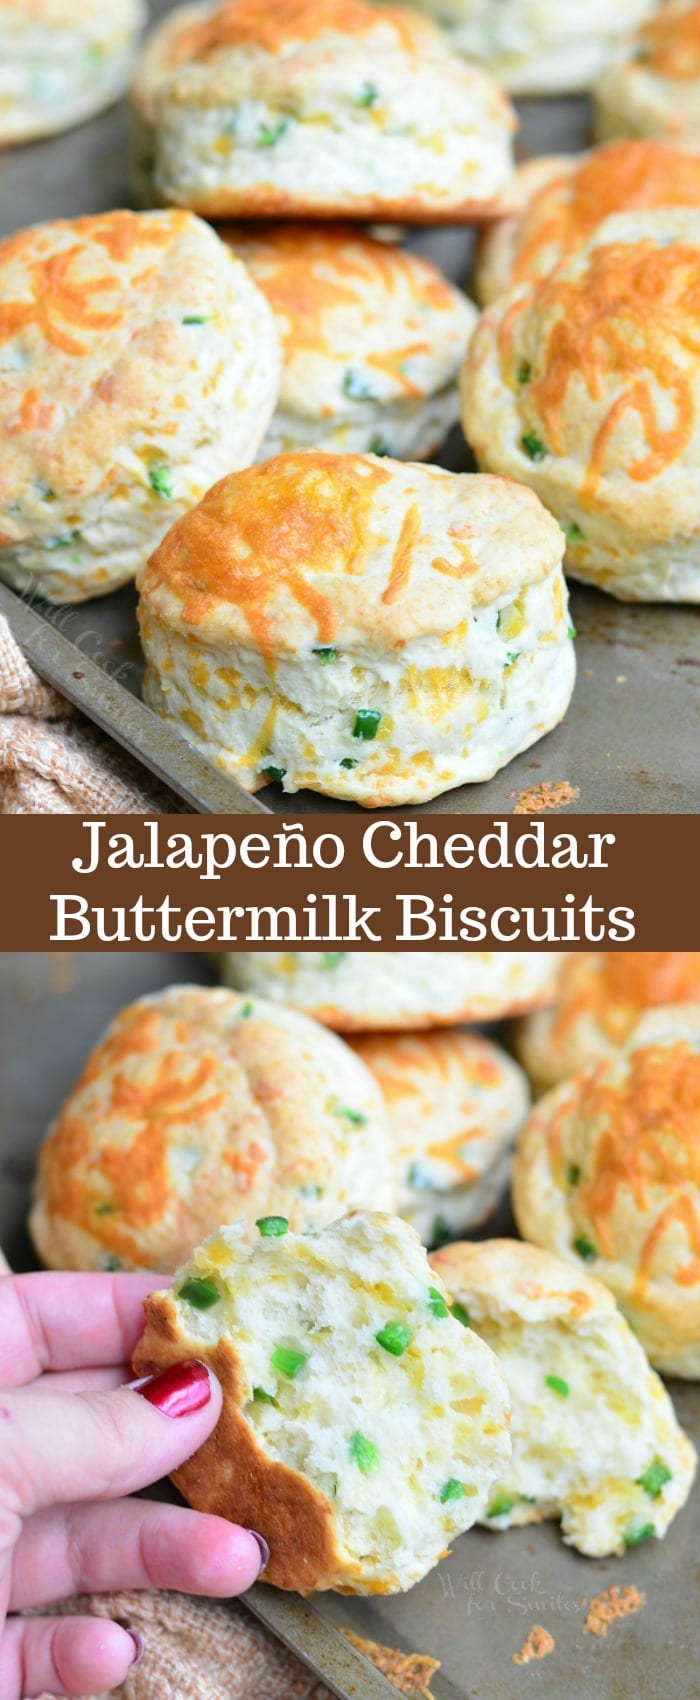 These Jalapeno Cheddar Buttermilk Biscuits are soft and fluffy with a great cheesy flavor and a zesty bite from jalapeno peppers. #bread #biscuits #jalapeno #cheesy #sidedish